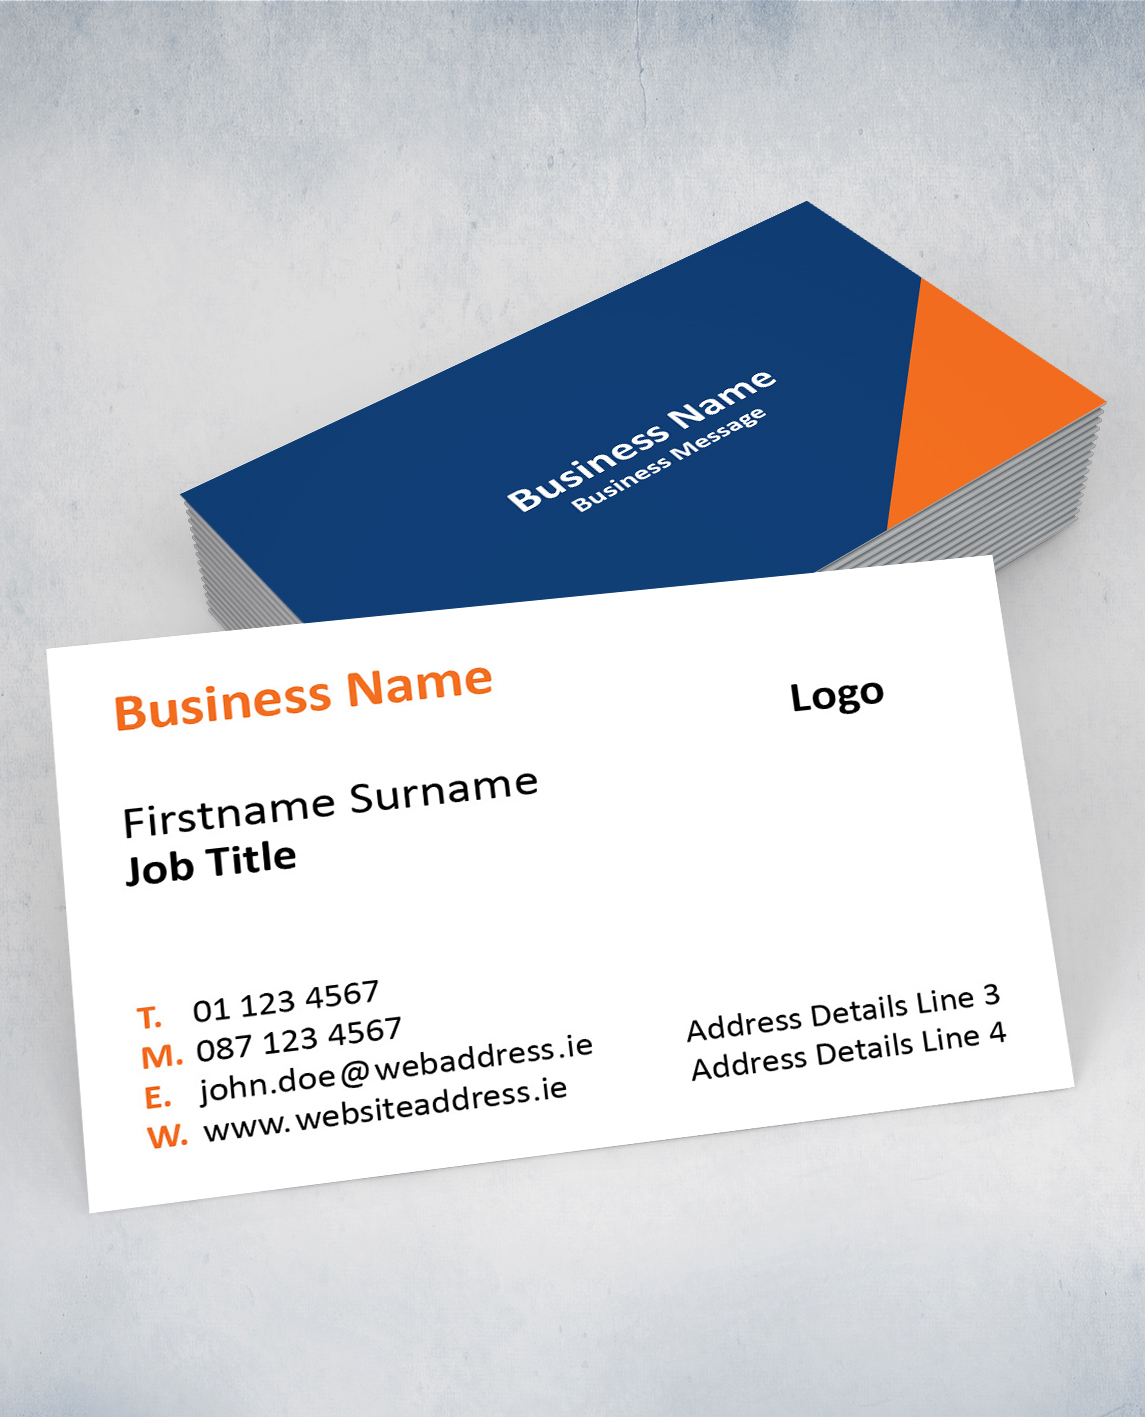 AdMailer from An Post | Business Cards Gallery